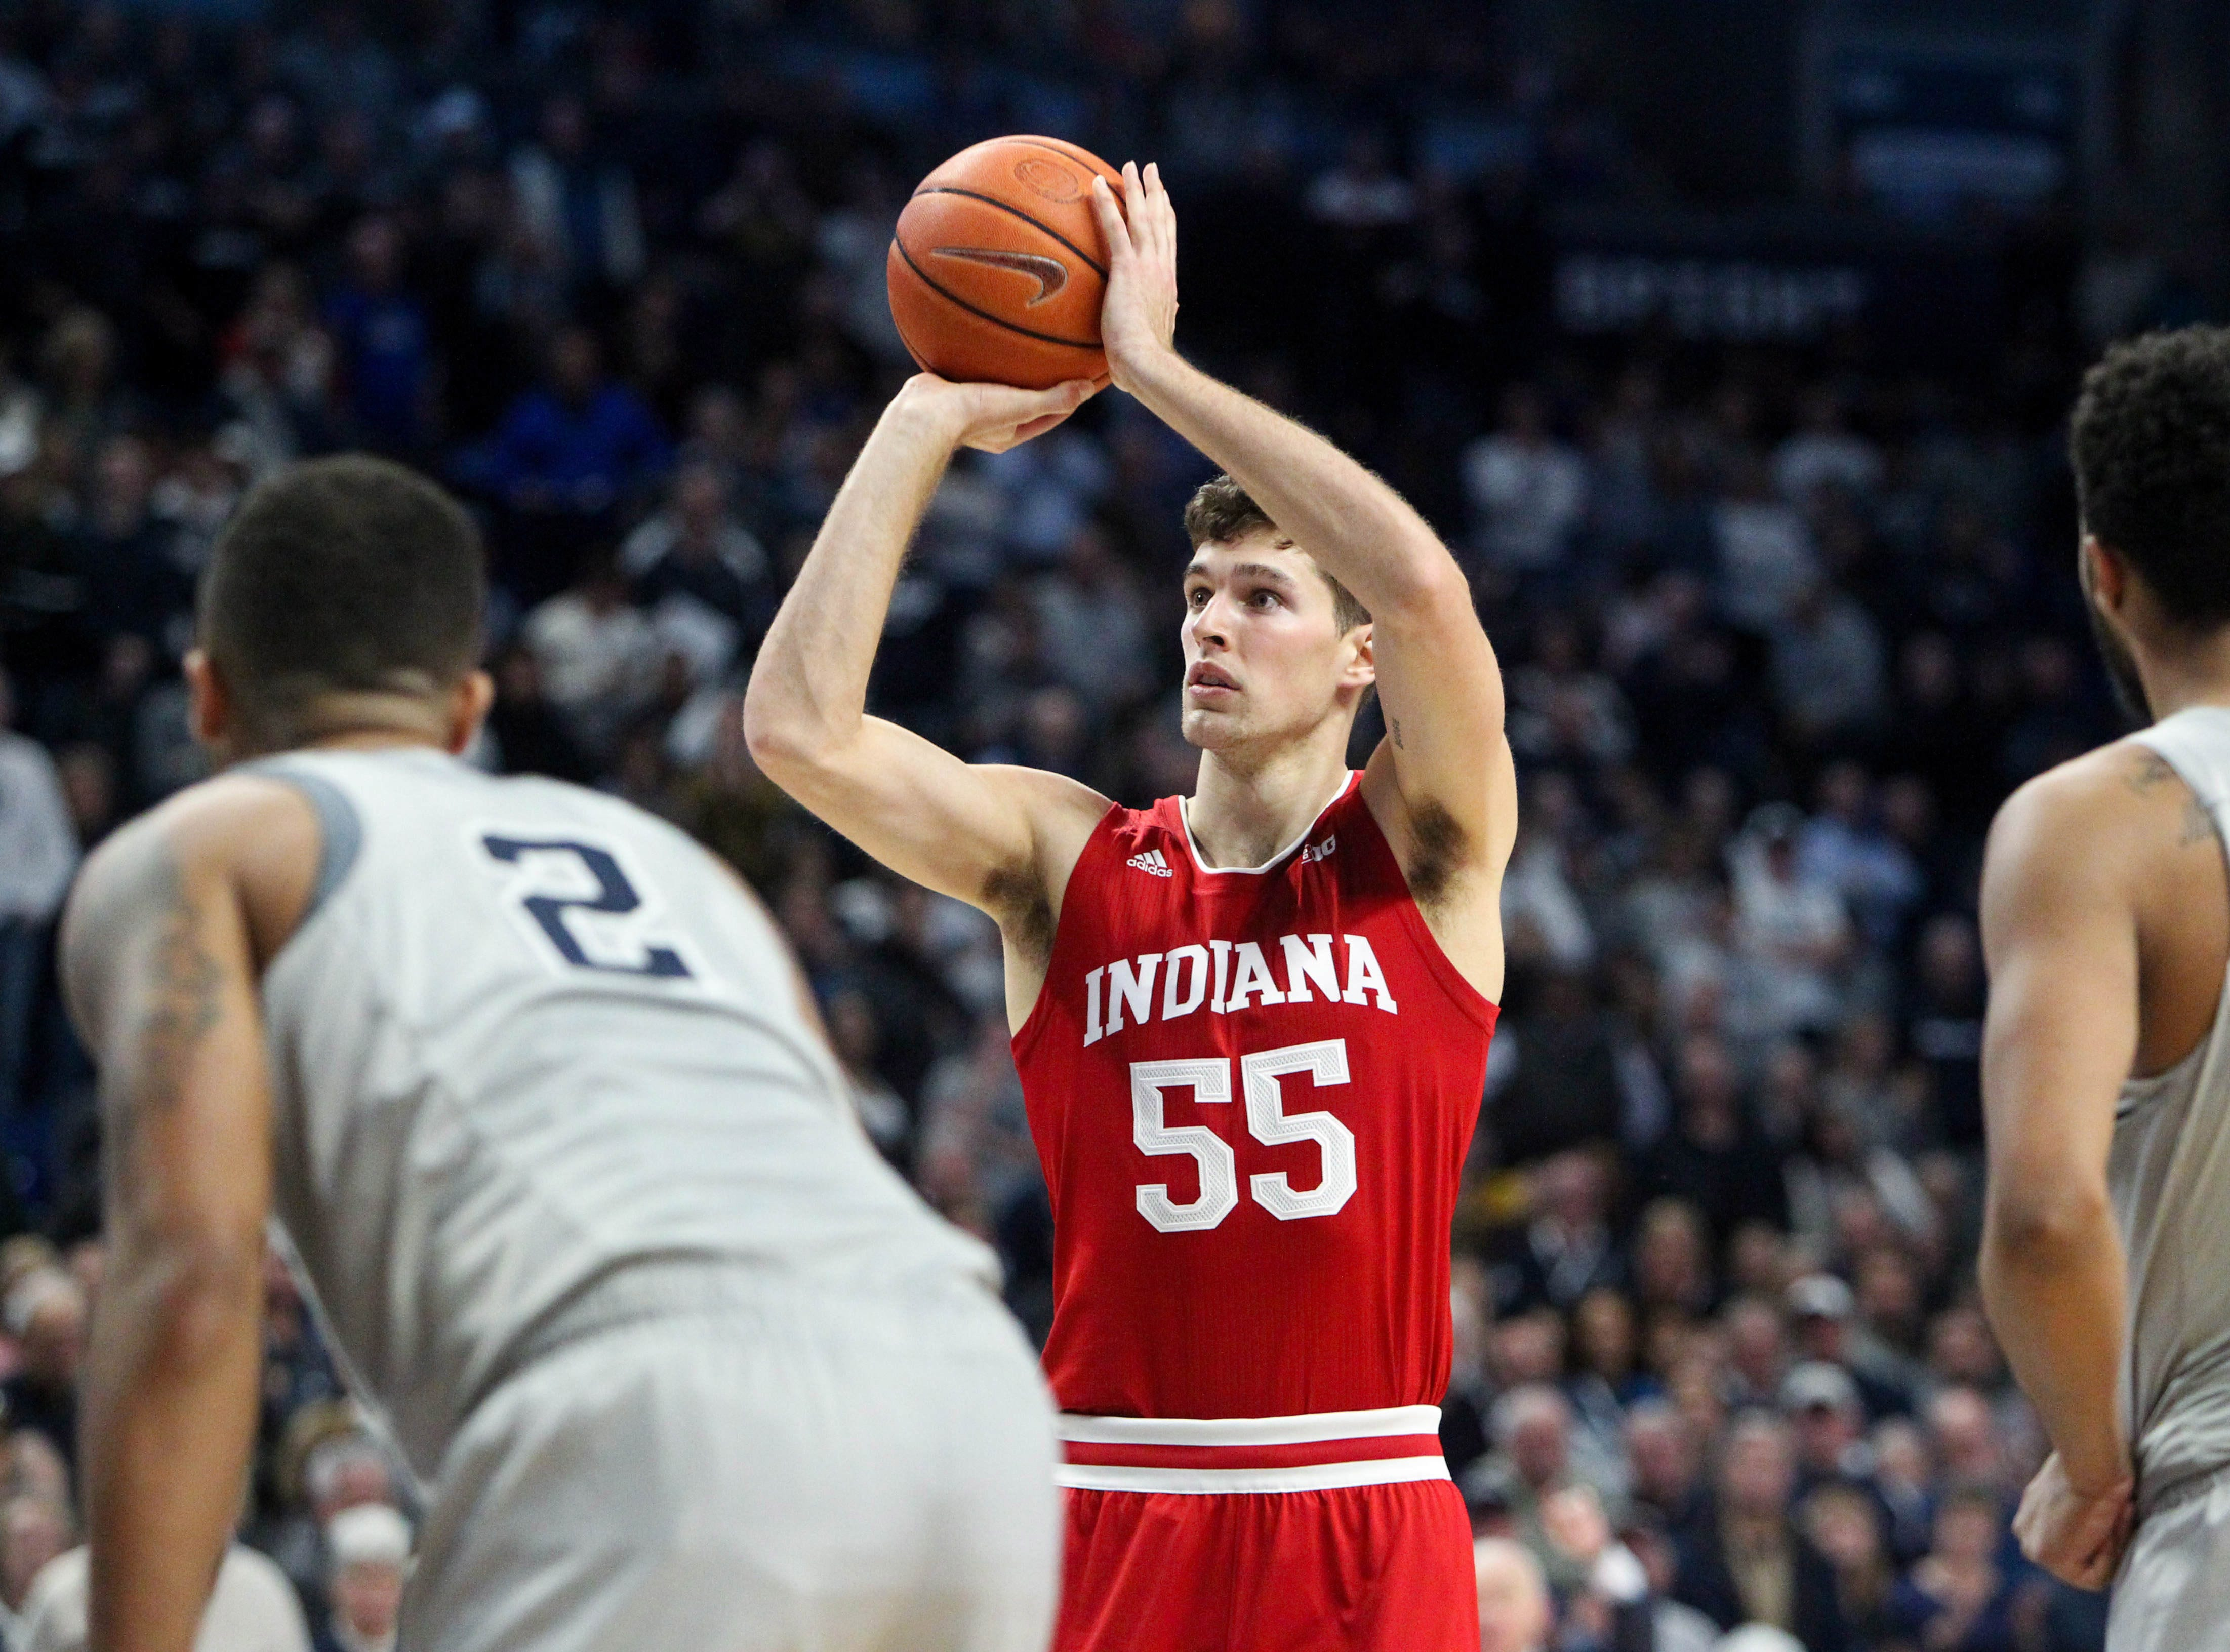 Dec 4, 2018; University Park, PA, USA; Indiana Hoosiers forward Evan Fitzner (55) shoots a free throw during the second half against the Penn State Nittany Lions at Bryce Jordan Center. Indiana defeated Penn State 64-62. Mandatory Credit: Matthew O'Haren-USA TODAY Sports